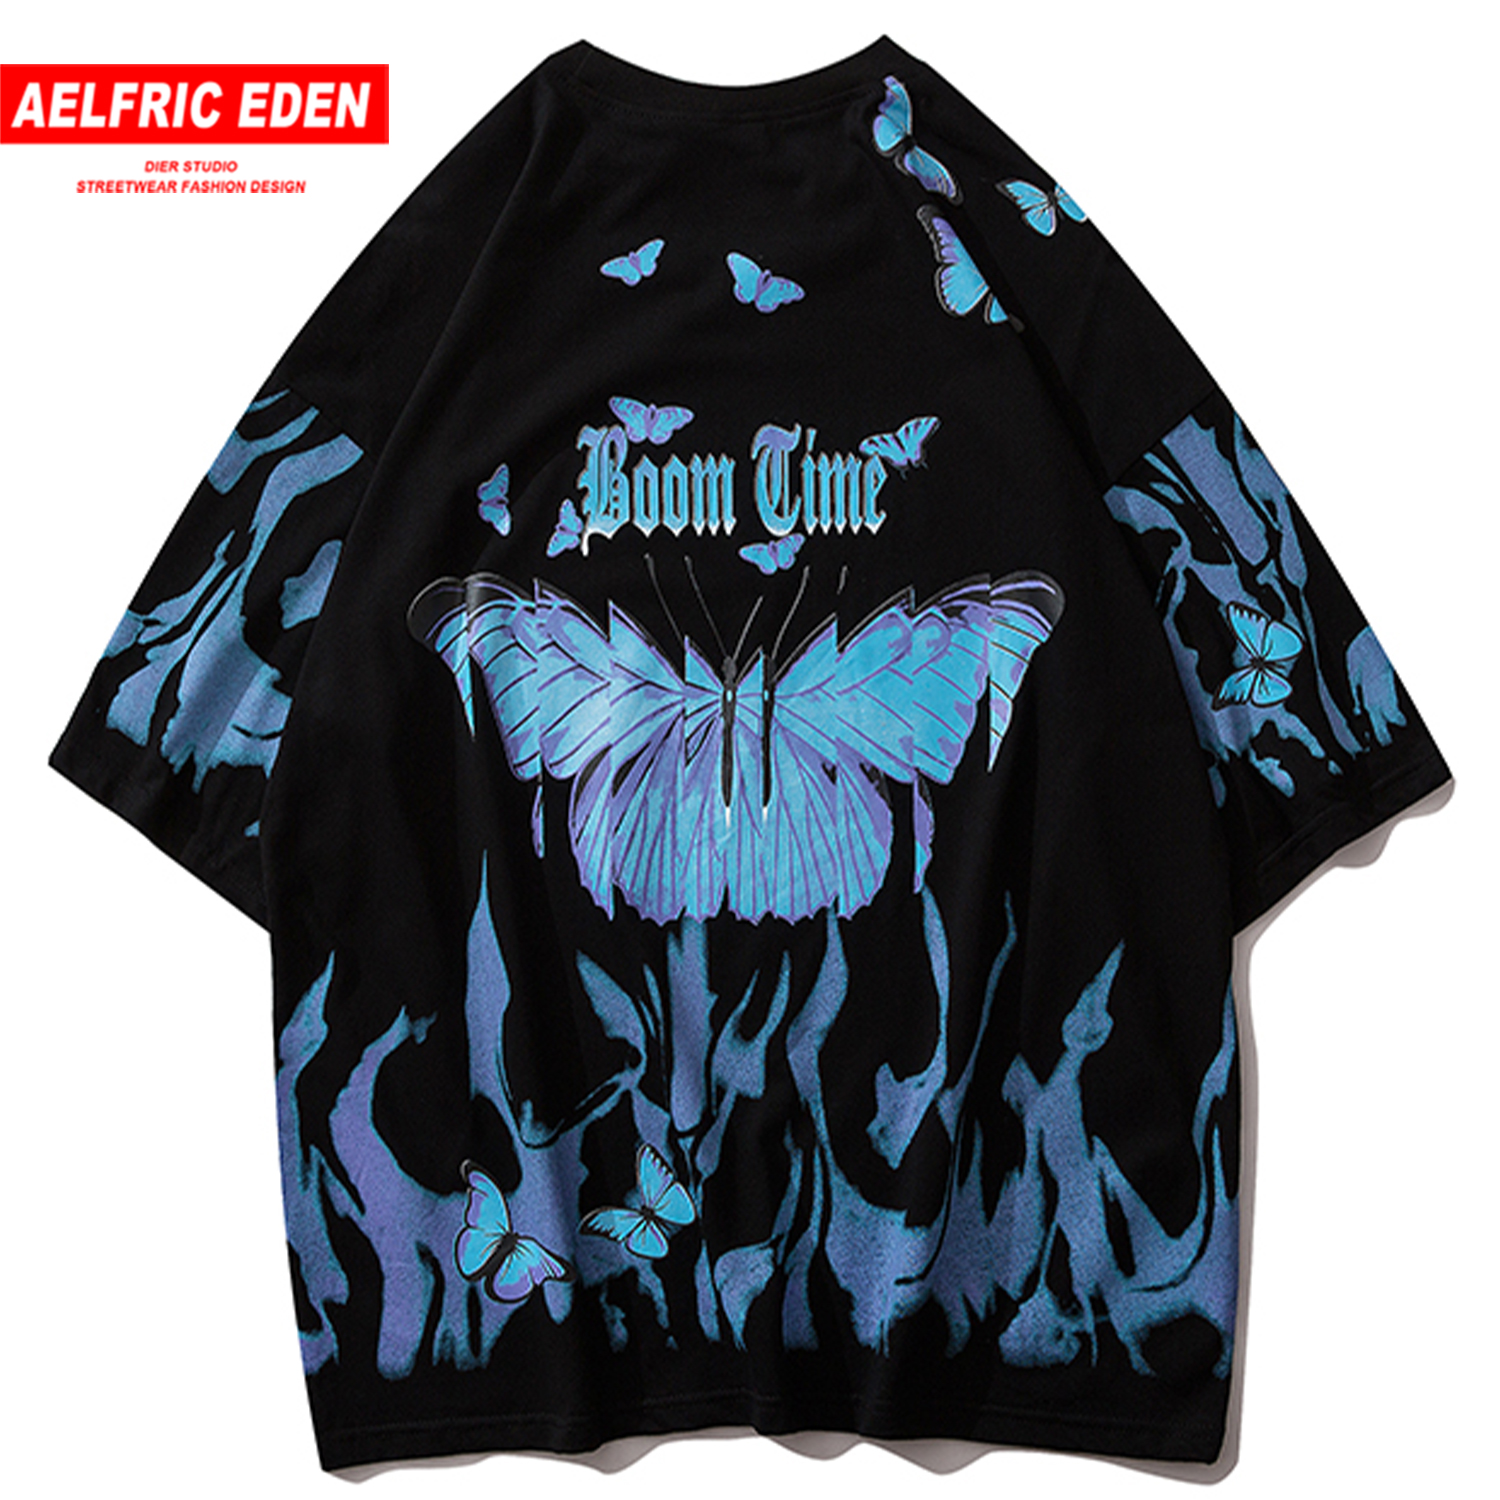 Aelfric Eden Blue Flame Butterfly Harajuku T Shirt Men 2020 Hip Hop Streetwear T Shirt Crew Neck Casual Cotton Short Sleeve Tops